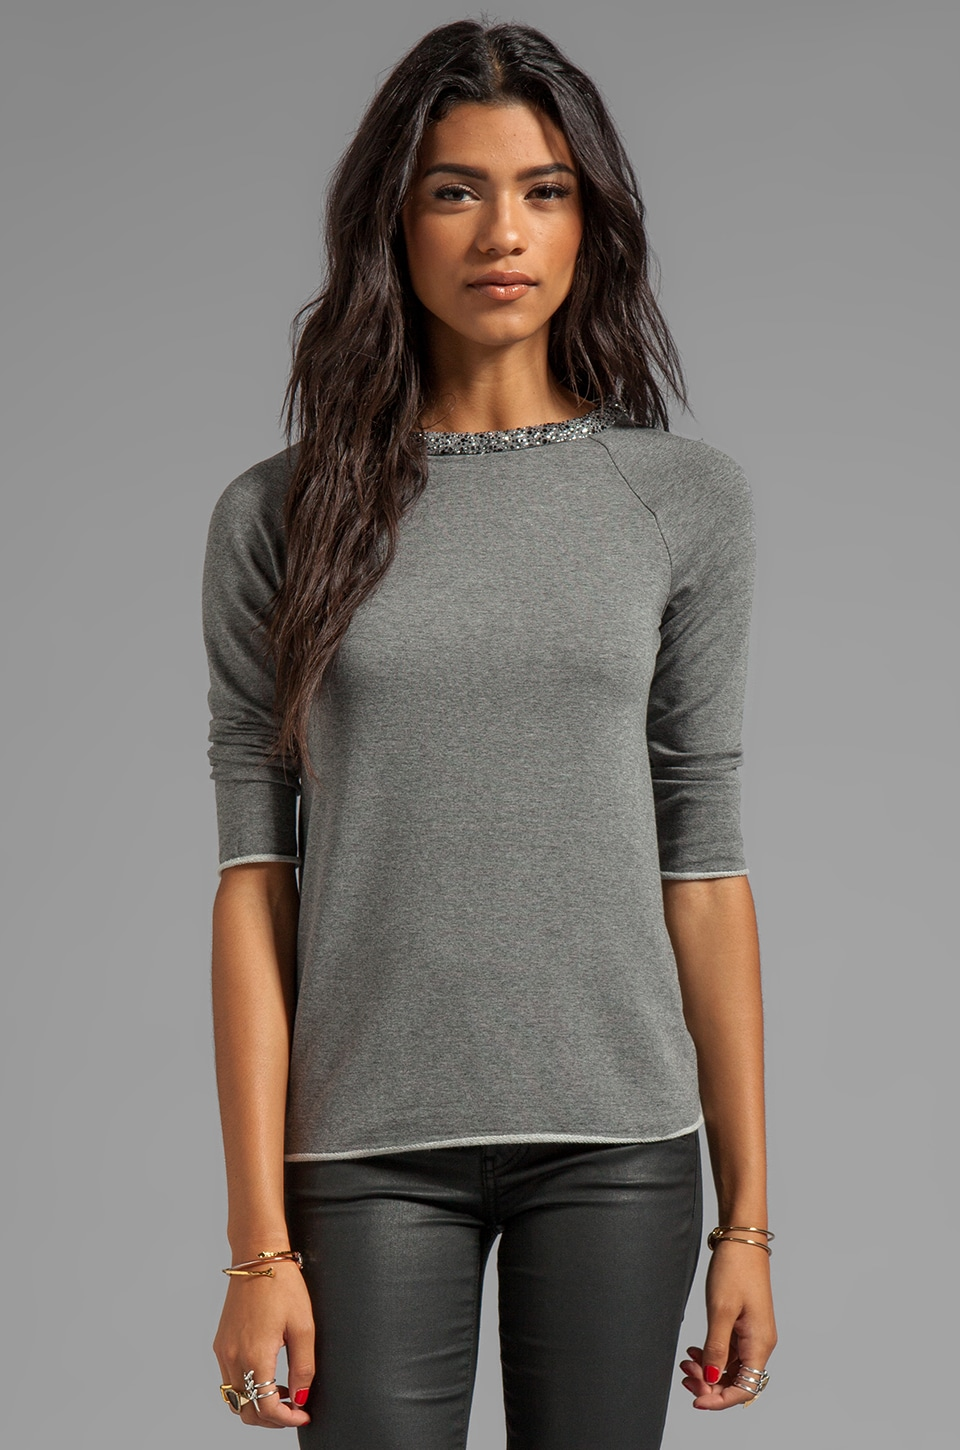 Bailey 44 Paradox Embellished Top in Mercury Heather